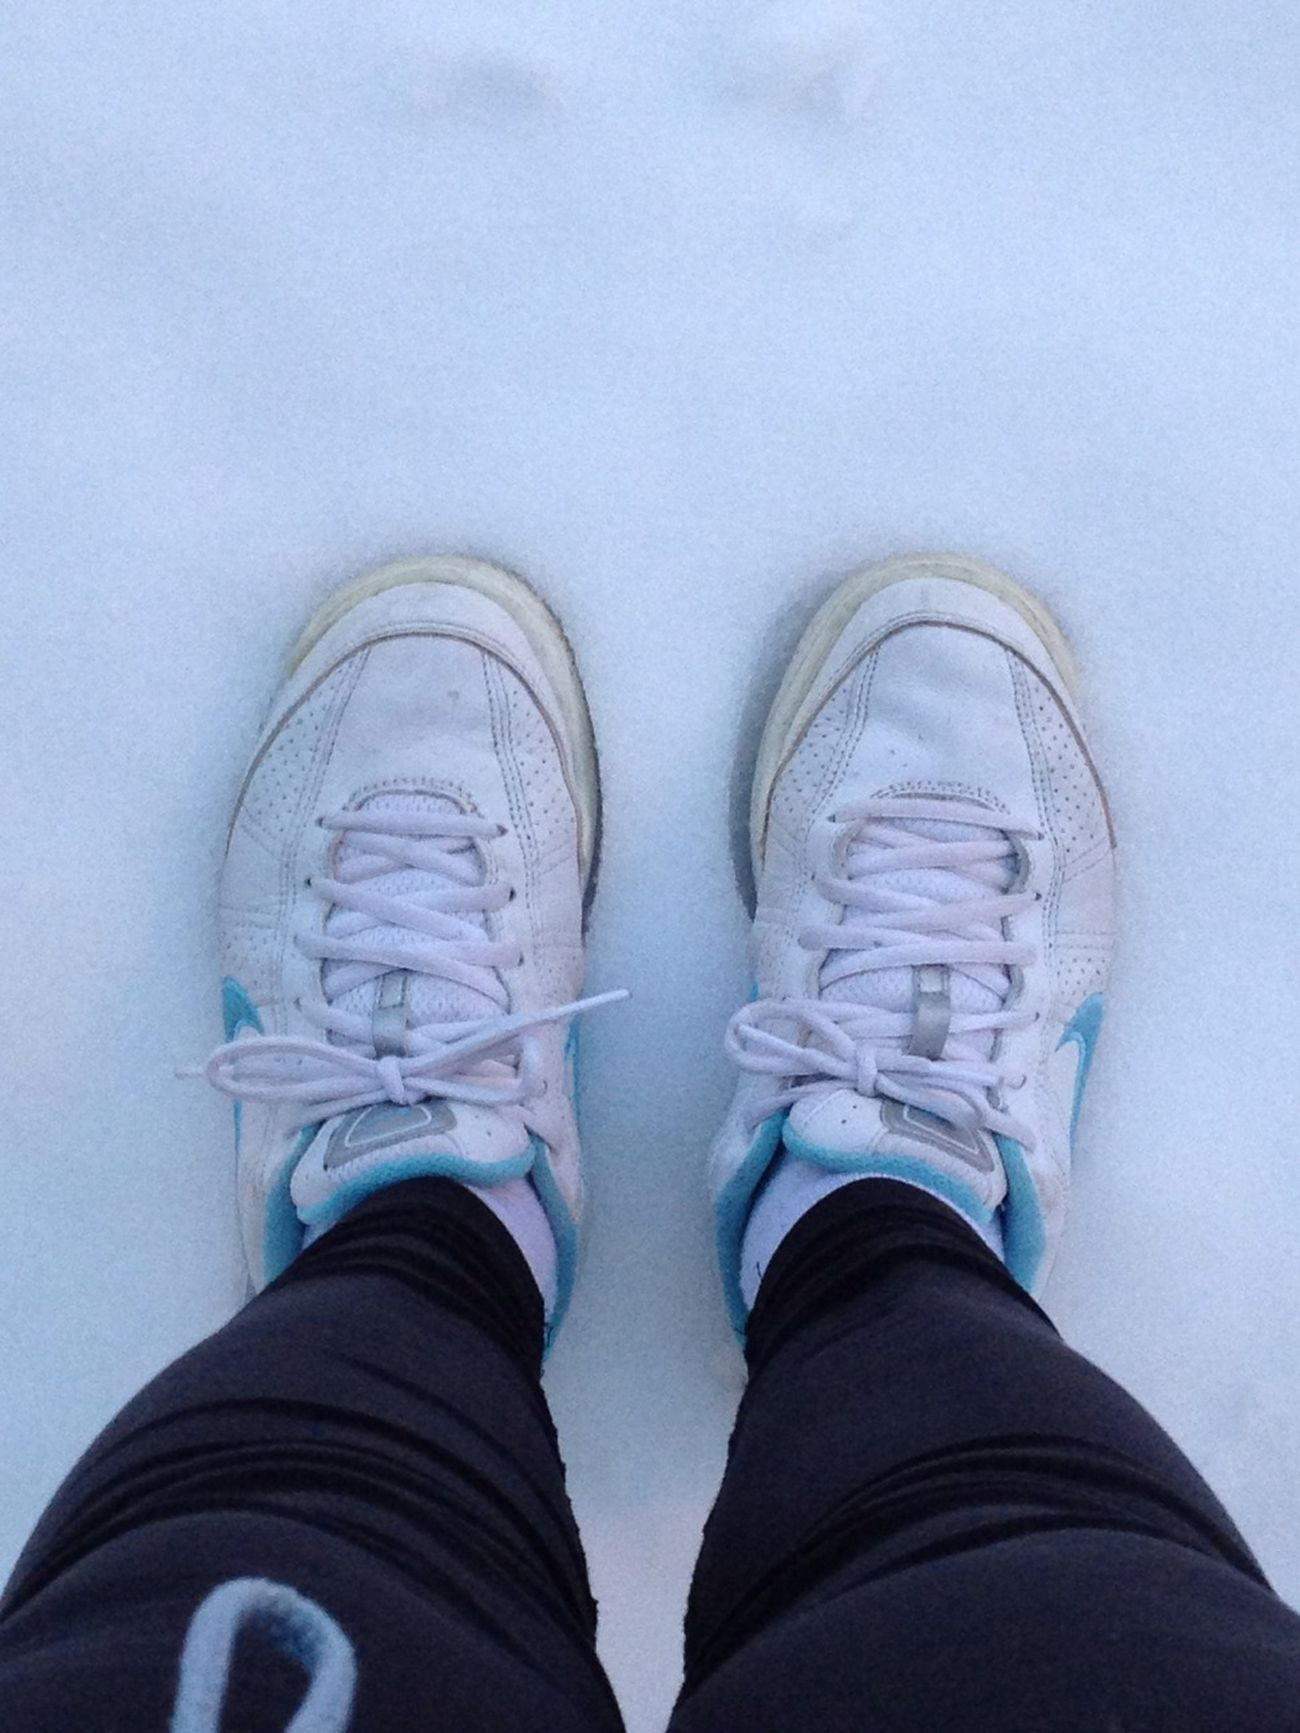 Running and snow.... good morning!